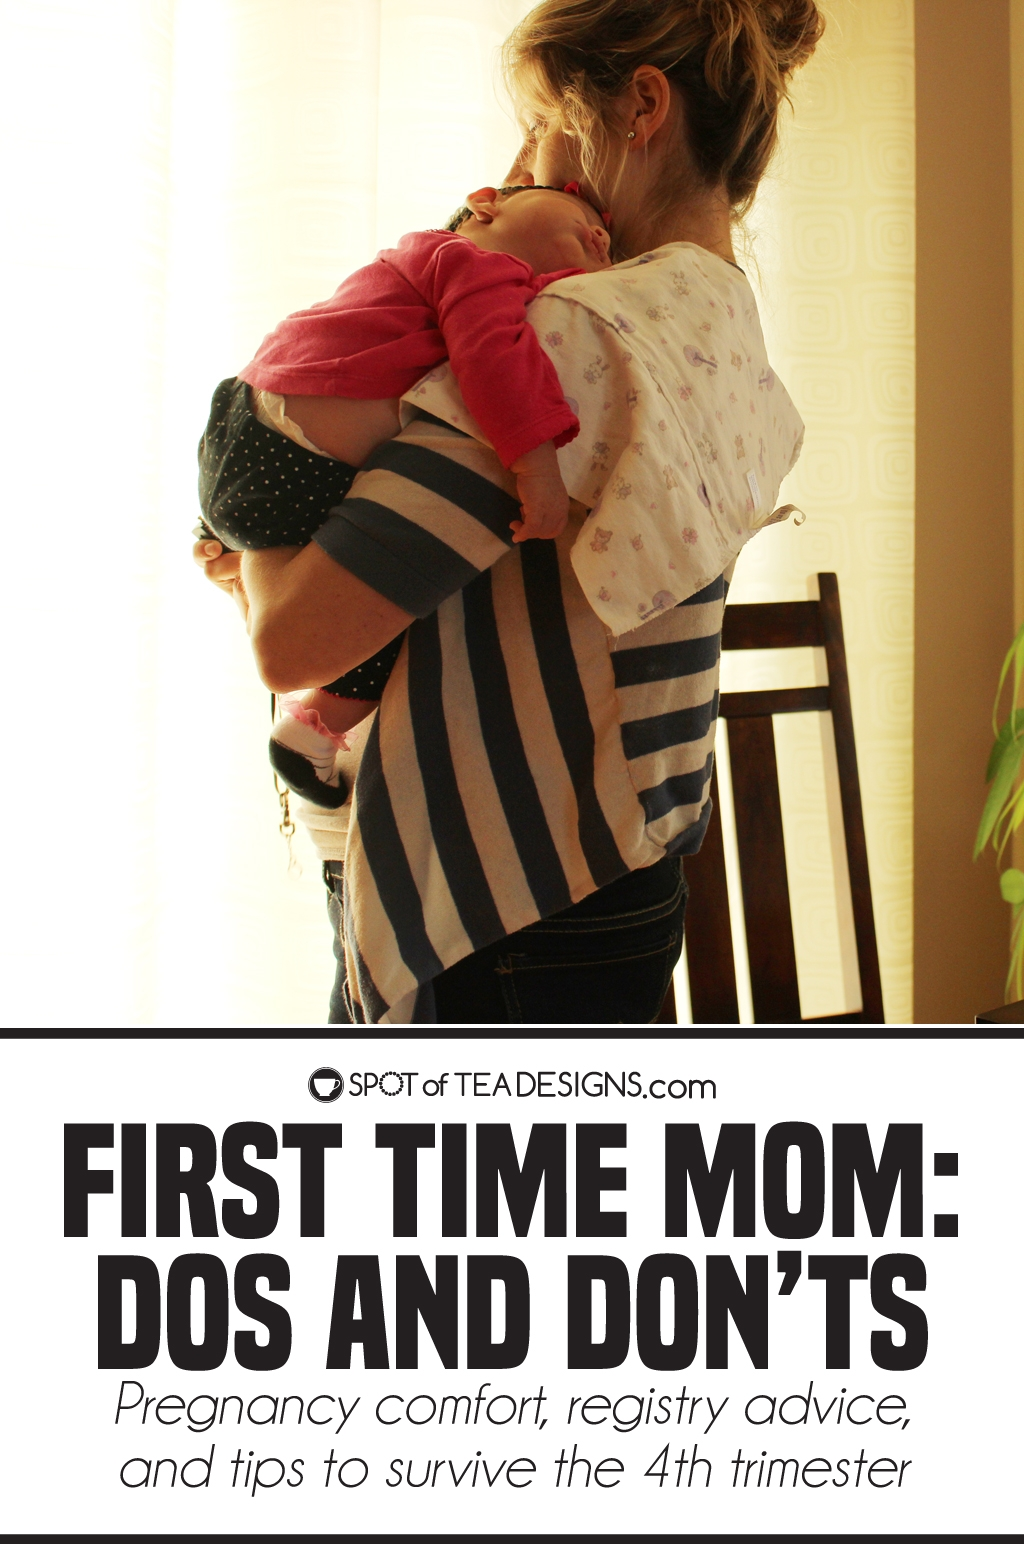 First time mom dos and donts - pregnancy comfort, registry advice and tips to survive the 4th trimester   spotofteadesigns.com